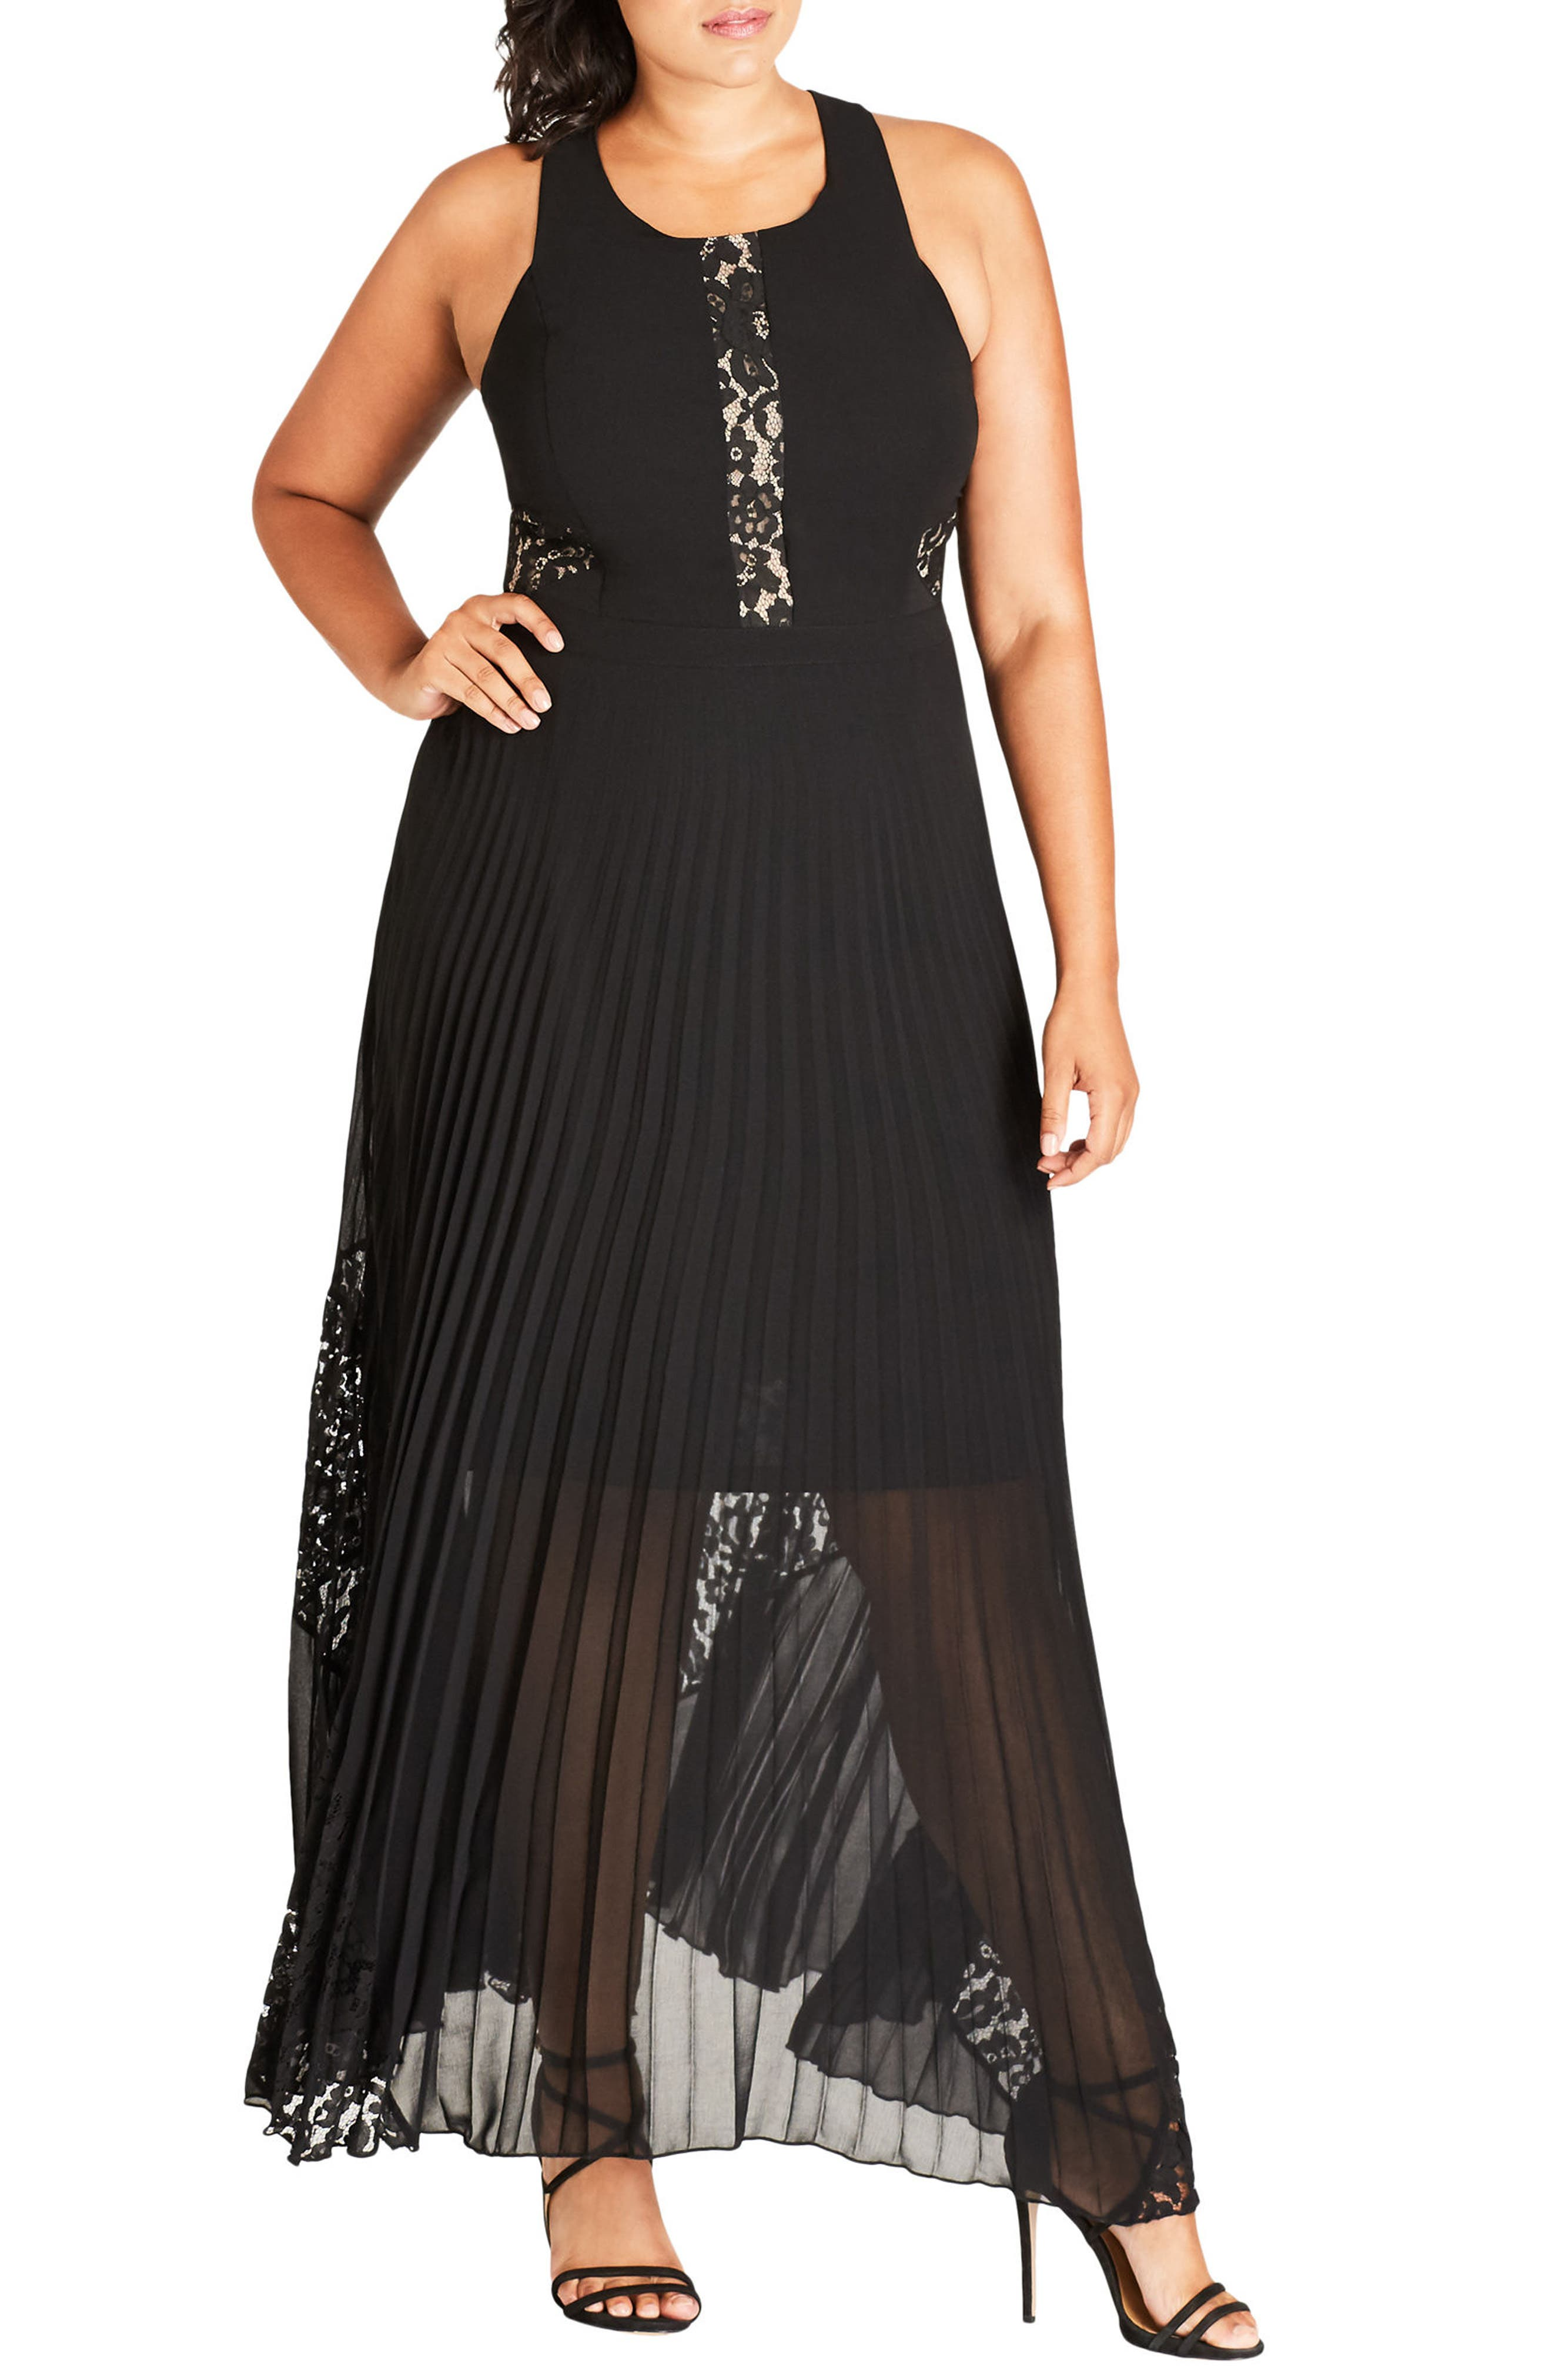 Main Image - City Chic Lace Inset Pleated Maxi Dress (Plus Size)